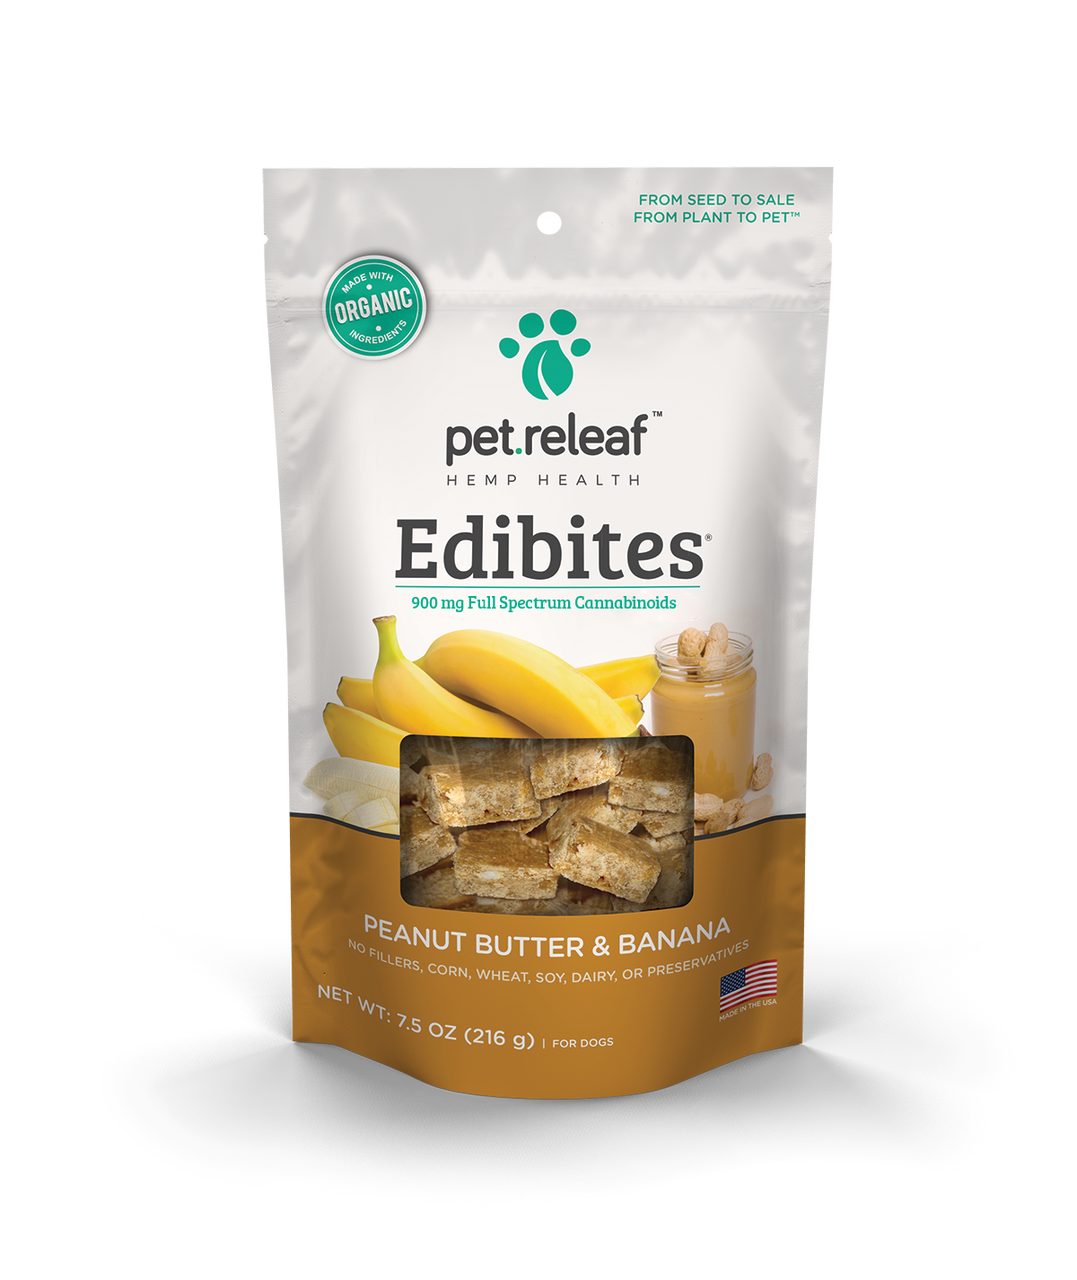 Pet Releaf Edibites Peanut Butter & Banana Dog Treats, 6.5-oz (Size: 7.5 ounces) Image